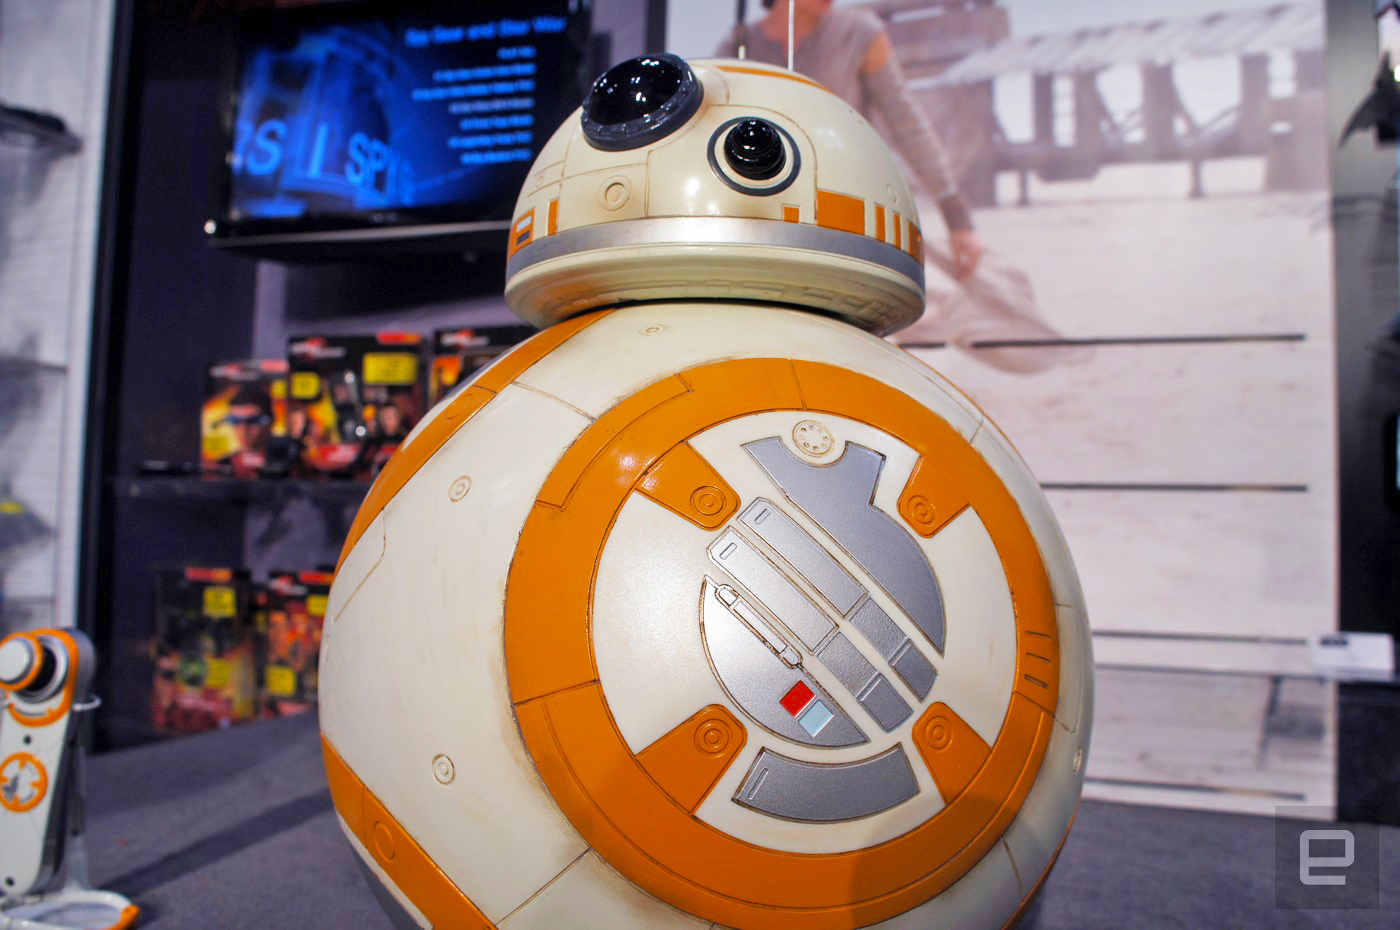 Spin Master's life-size BB-8 is too cute and too real